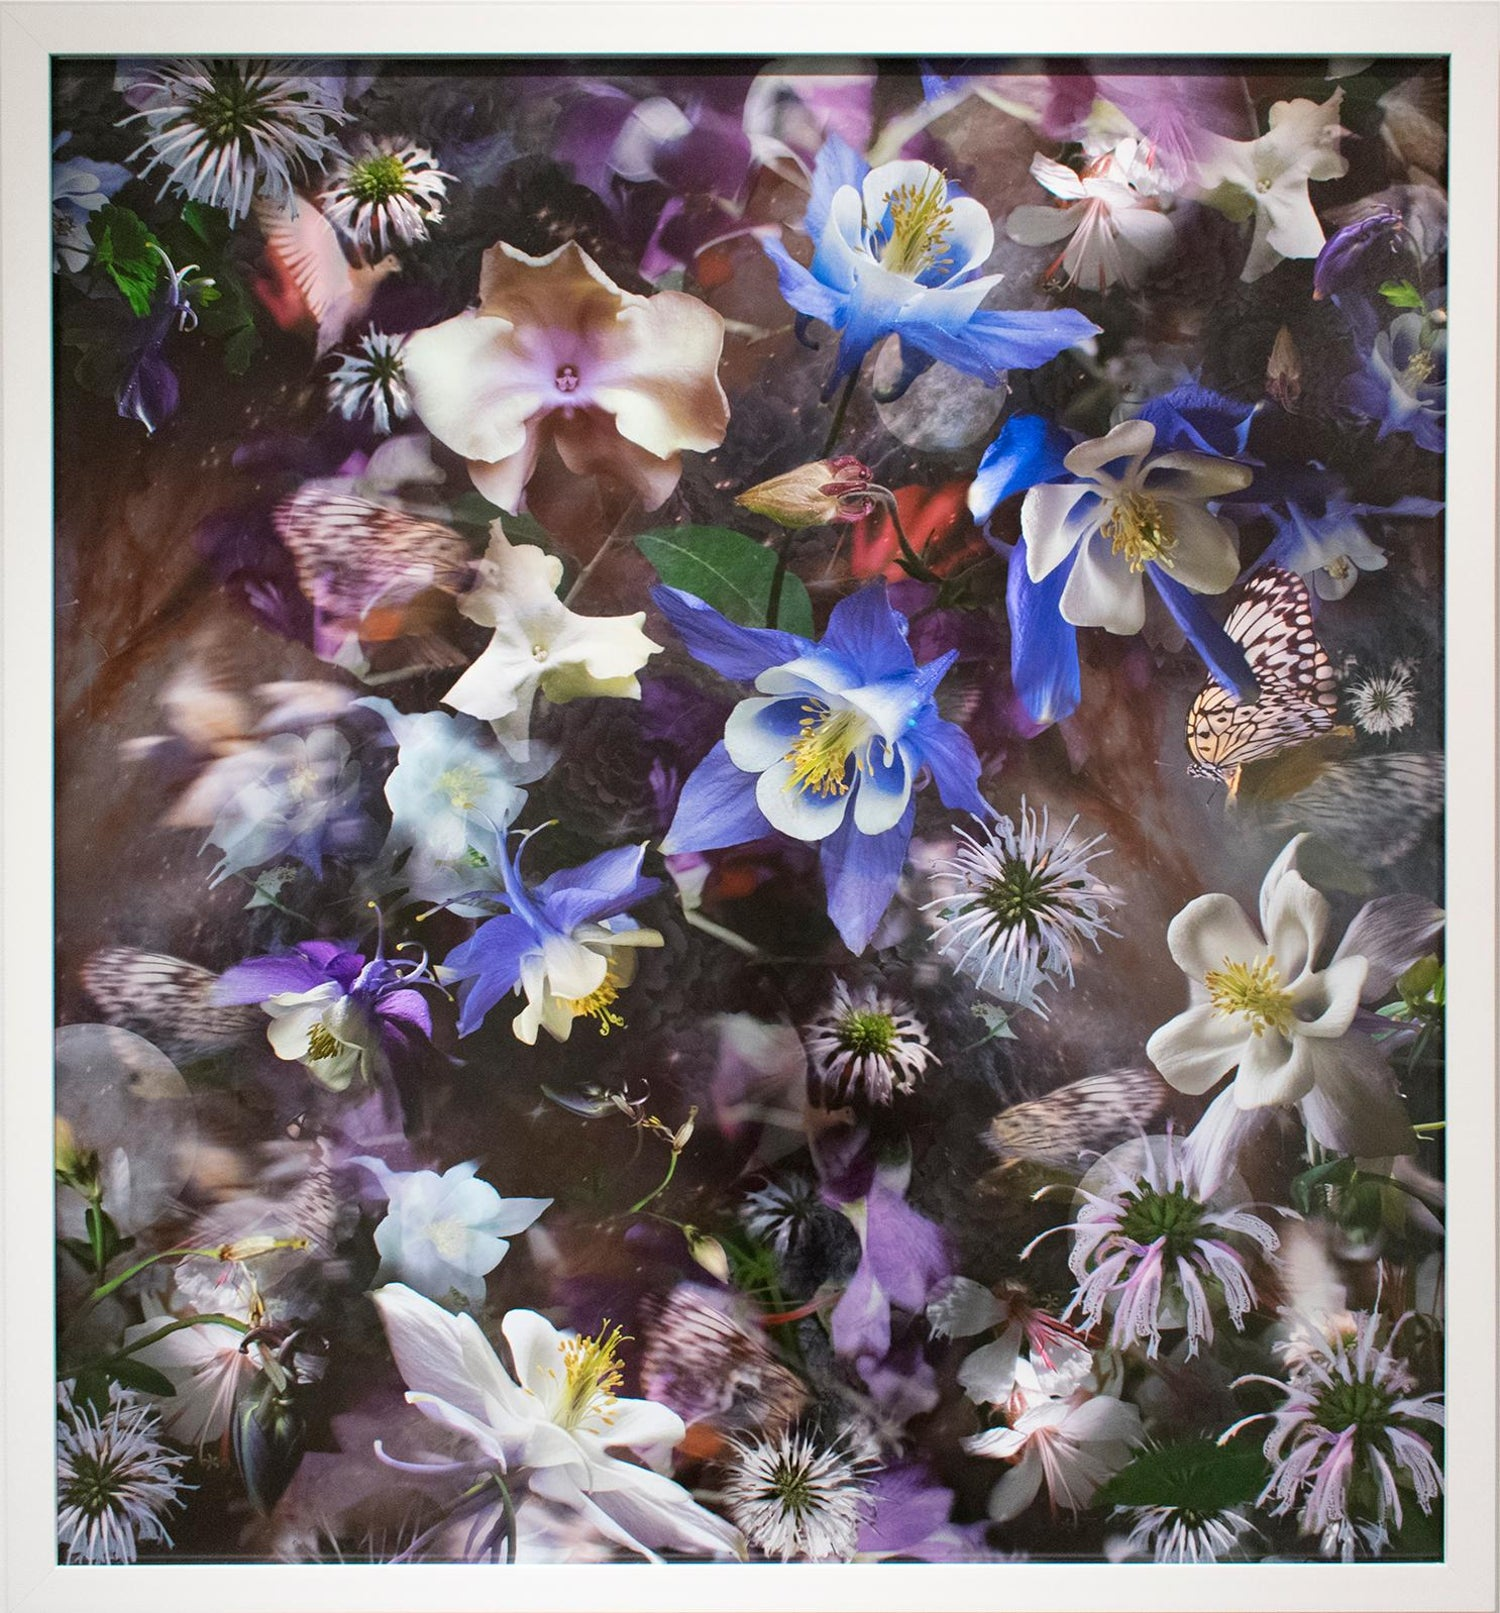 Lisa a frank columbine the mystery of five abstracted still lisa a frank columbine the mystery of five abstracted still life photo of flowers photograph for sale at 1stdibs izmirmasajfo